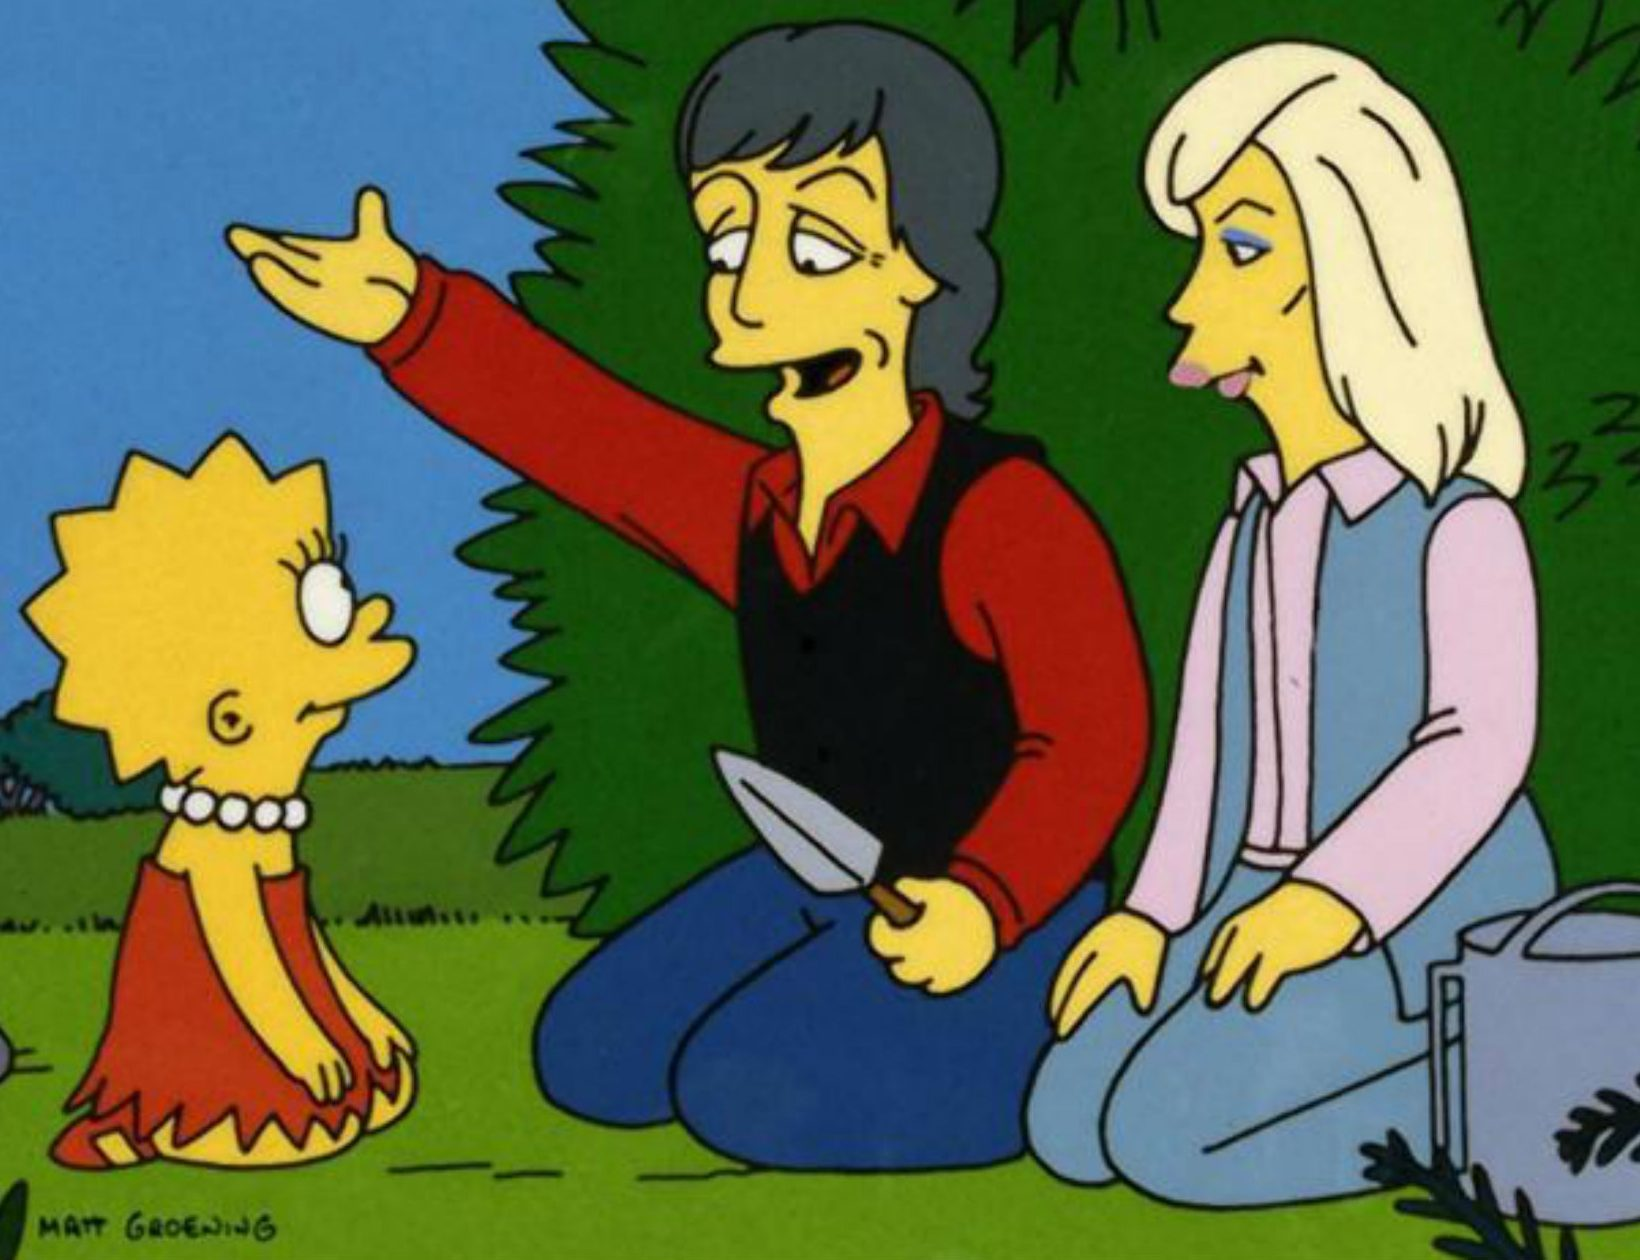 thesimpsons e1615994547299 30 Things You Didn't Know About The Simpsons